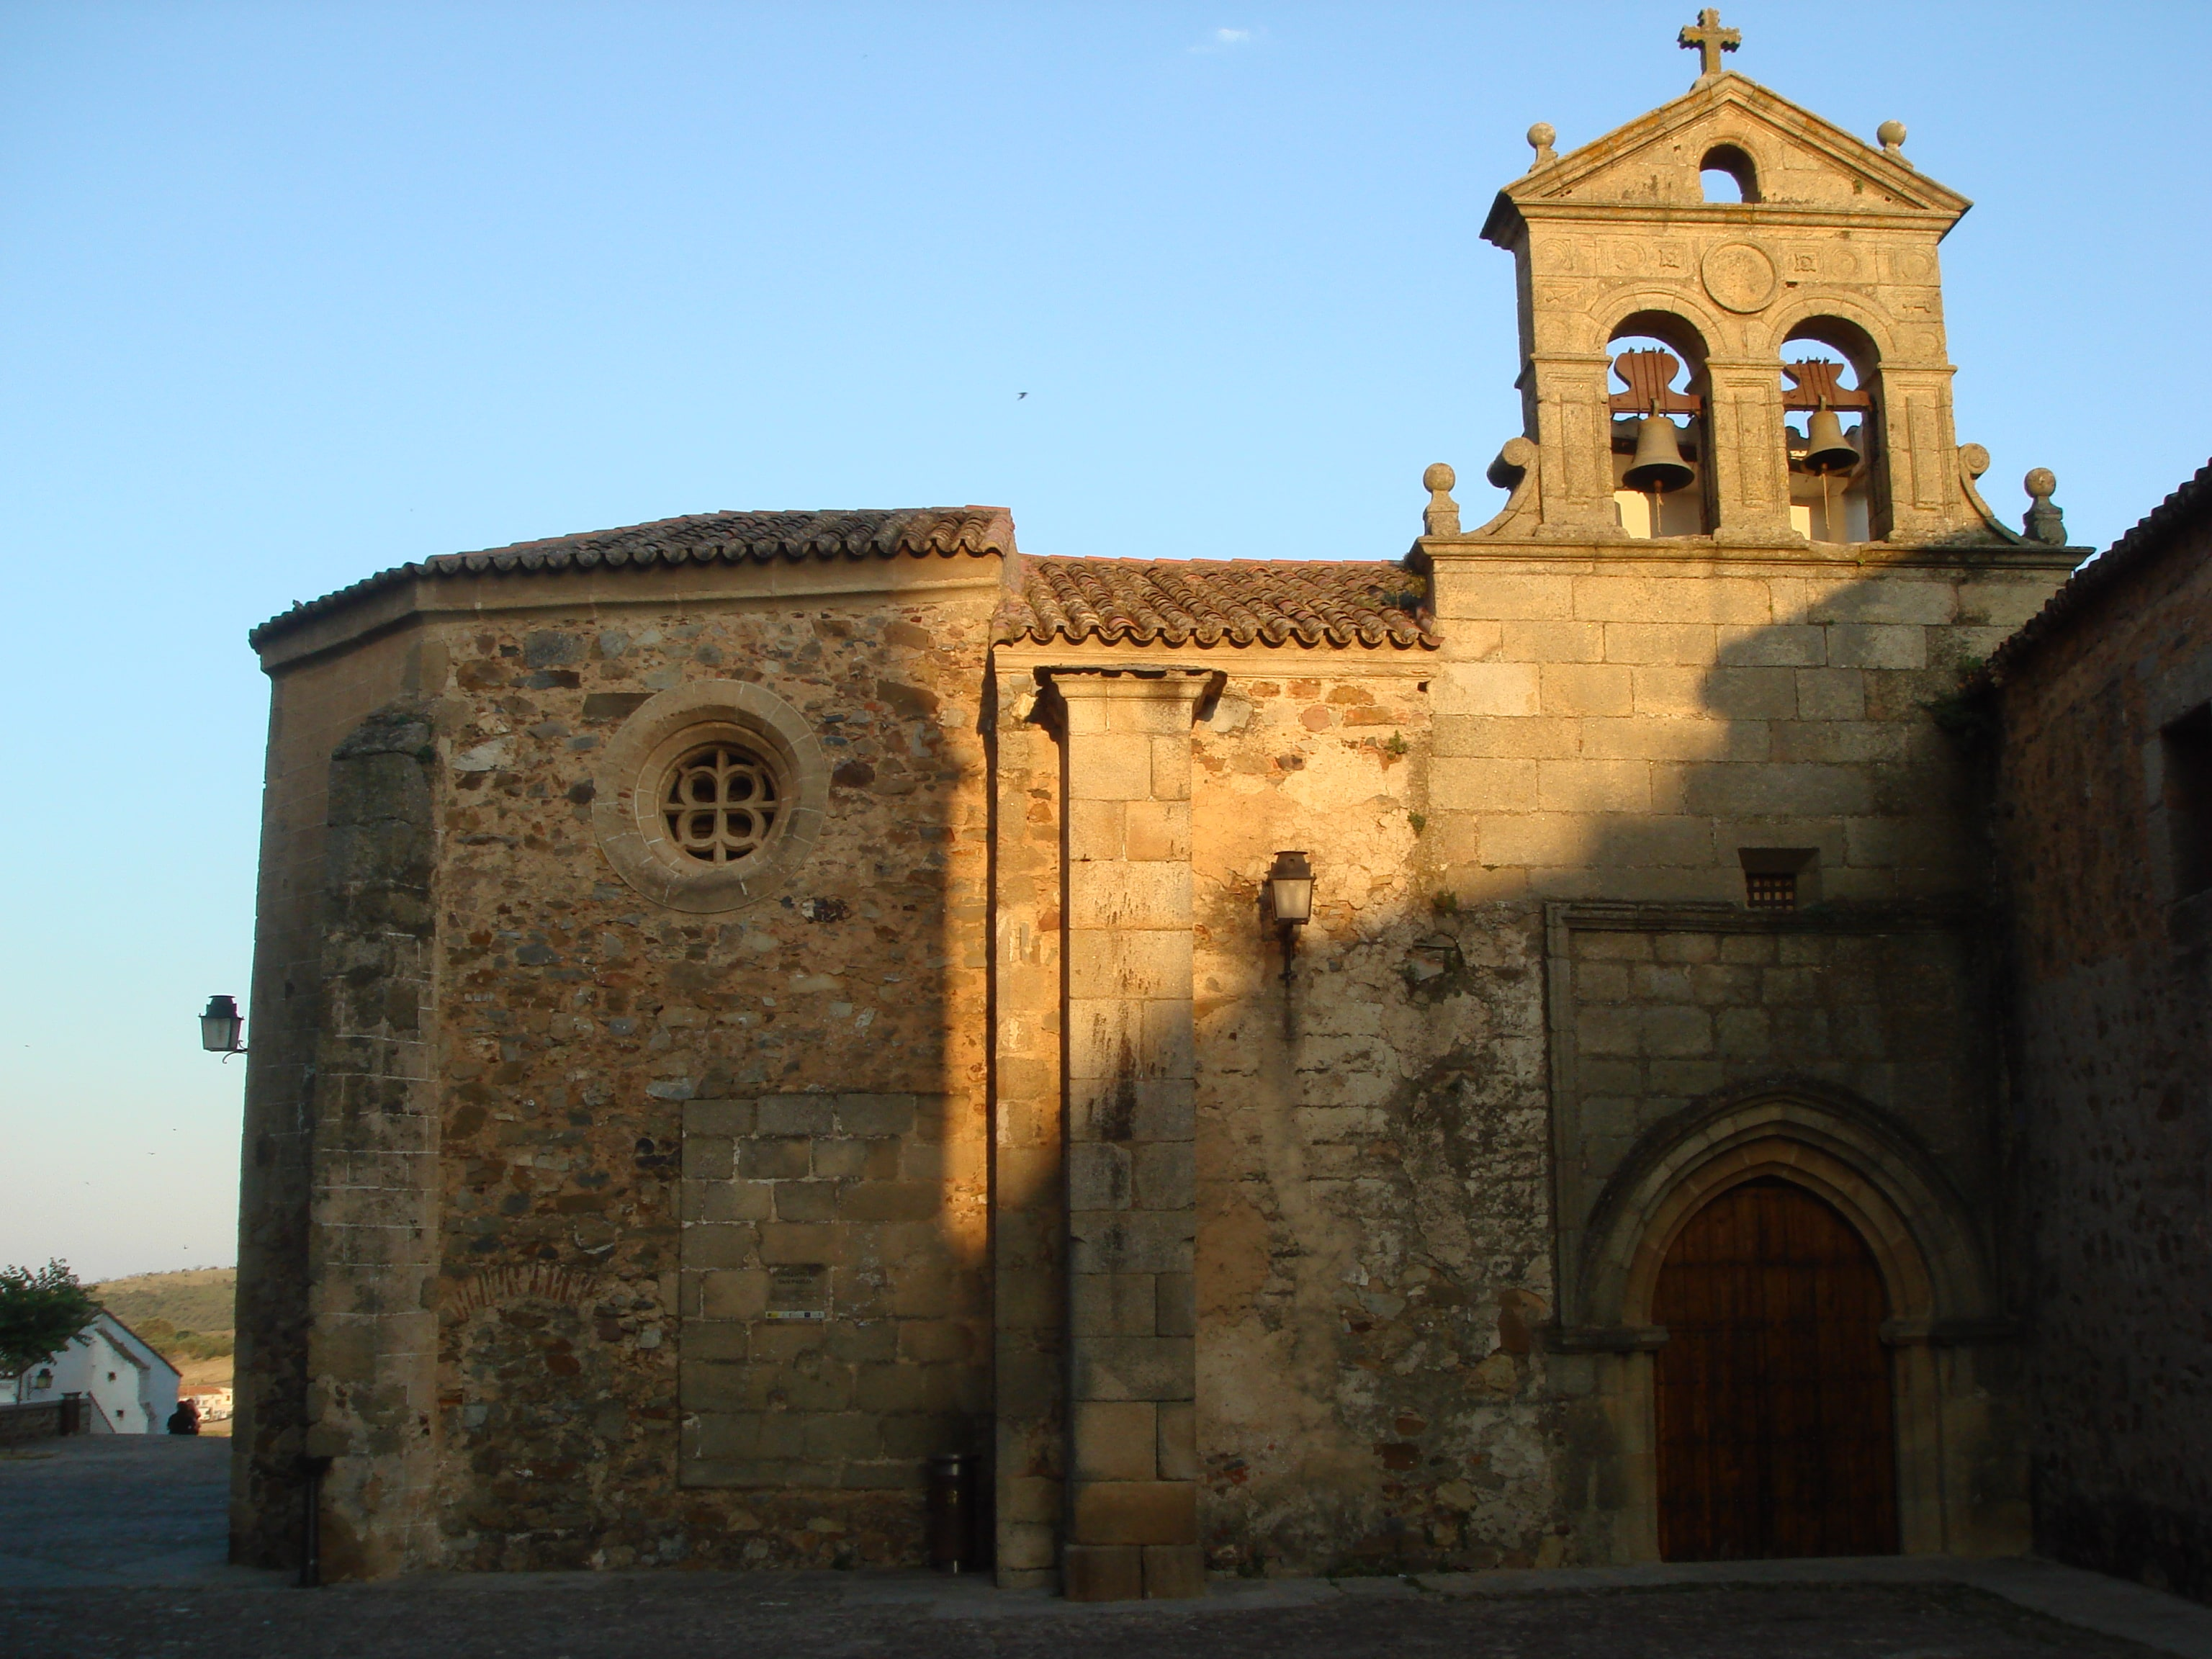 Visiting the medieval town of Cáceres is a cool thing to do in Spain